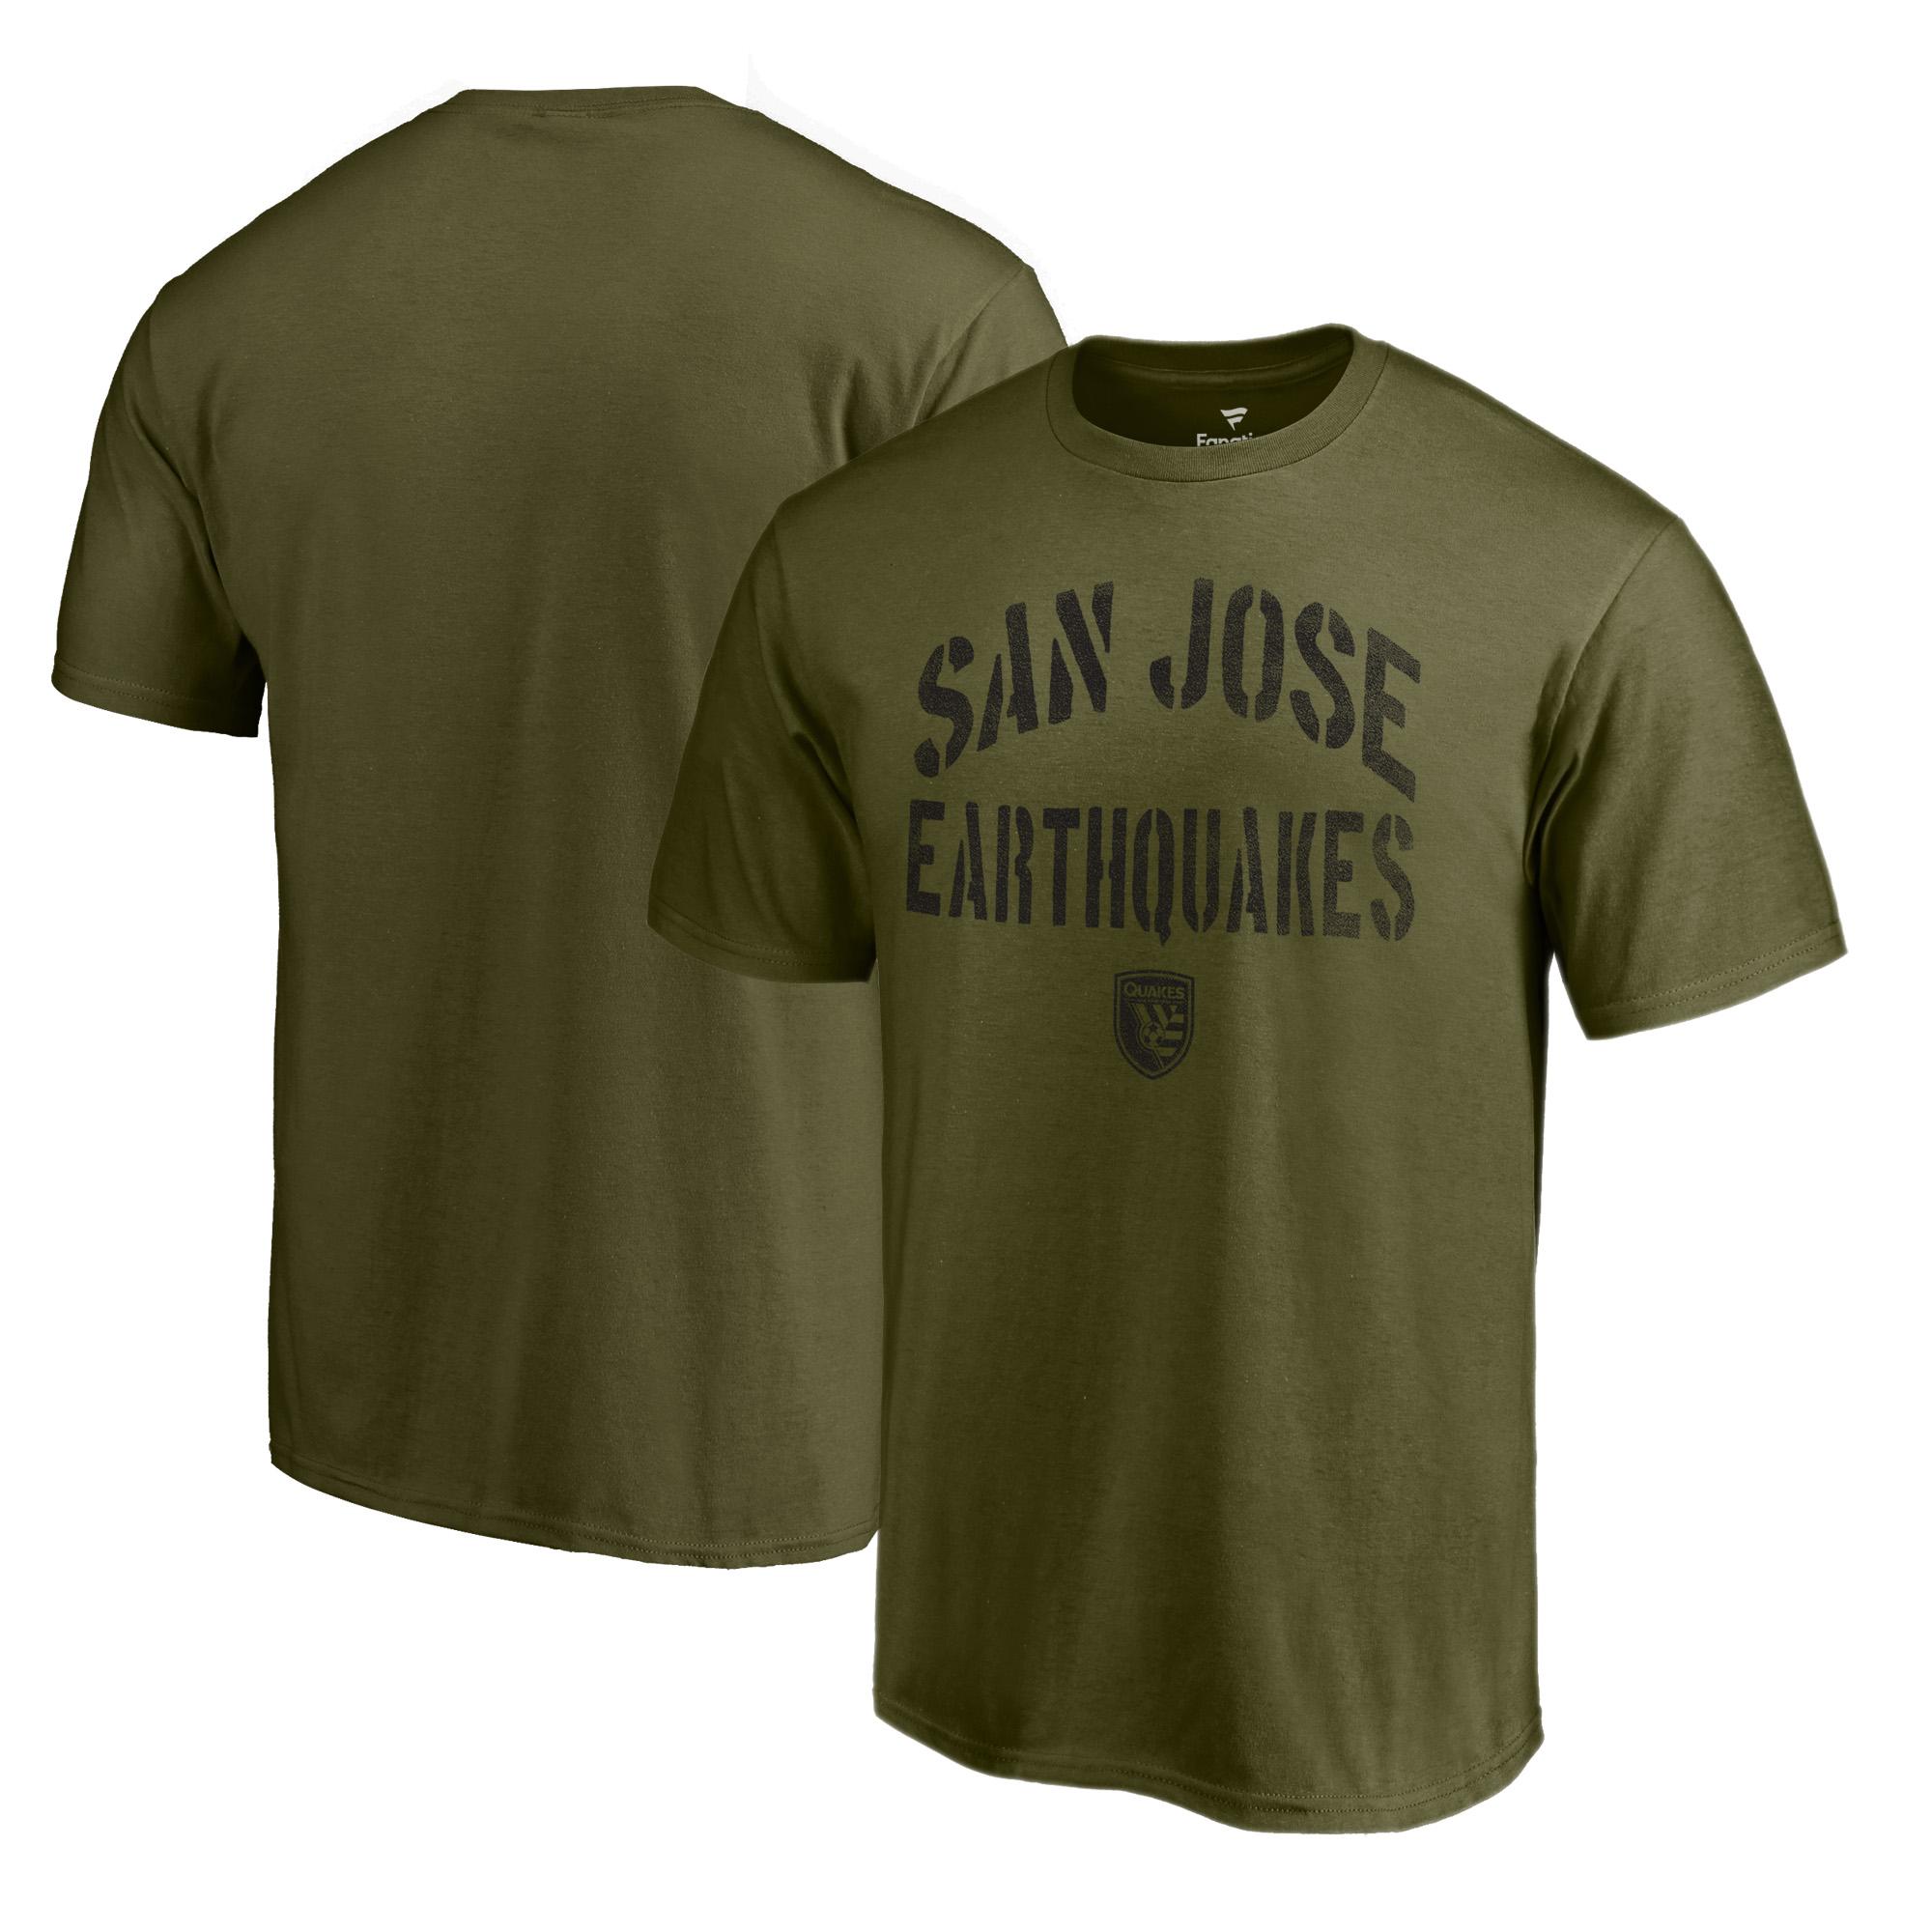 San Jose Earthquakes Fanatics Branded Camo Collection Jungle T-Shirt - Green